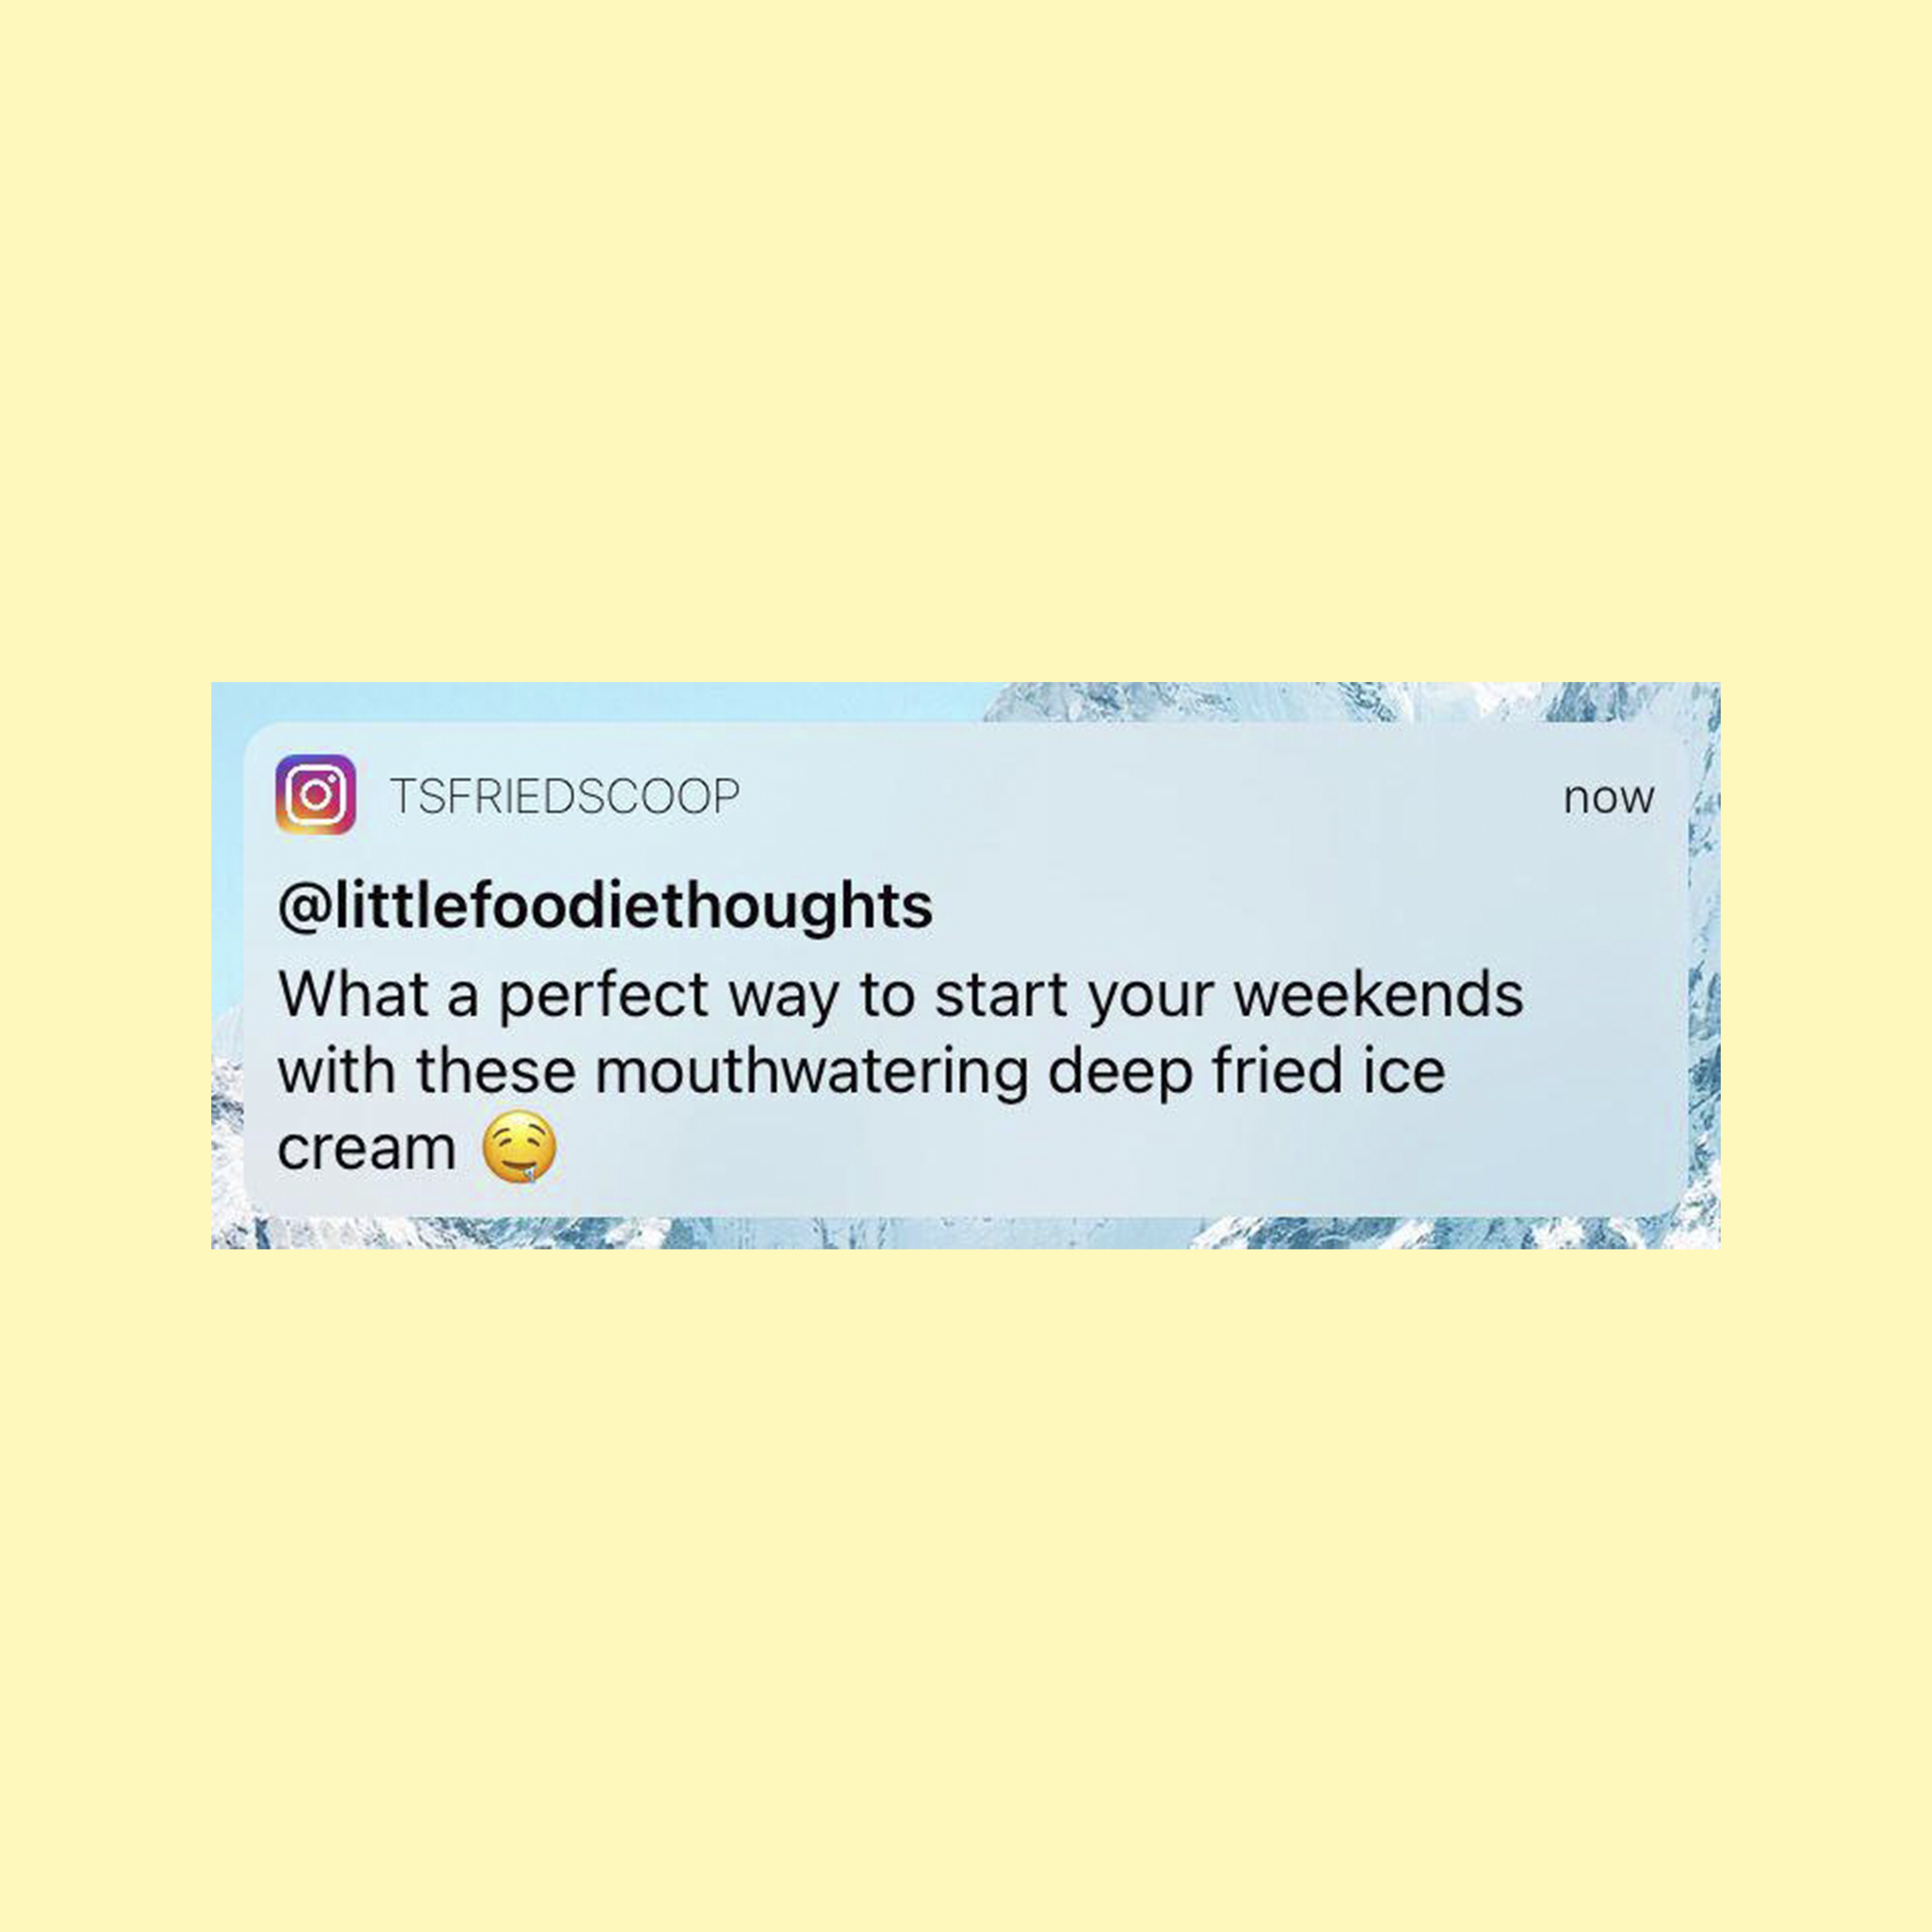 littlefoodiethoughts review ts fried scoop